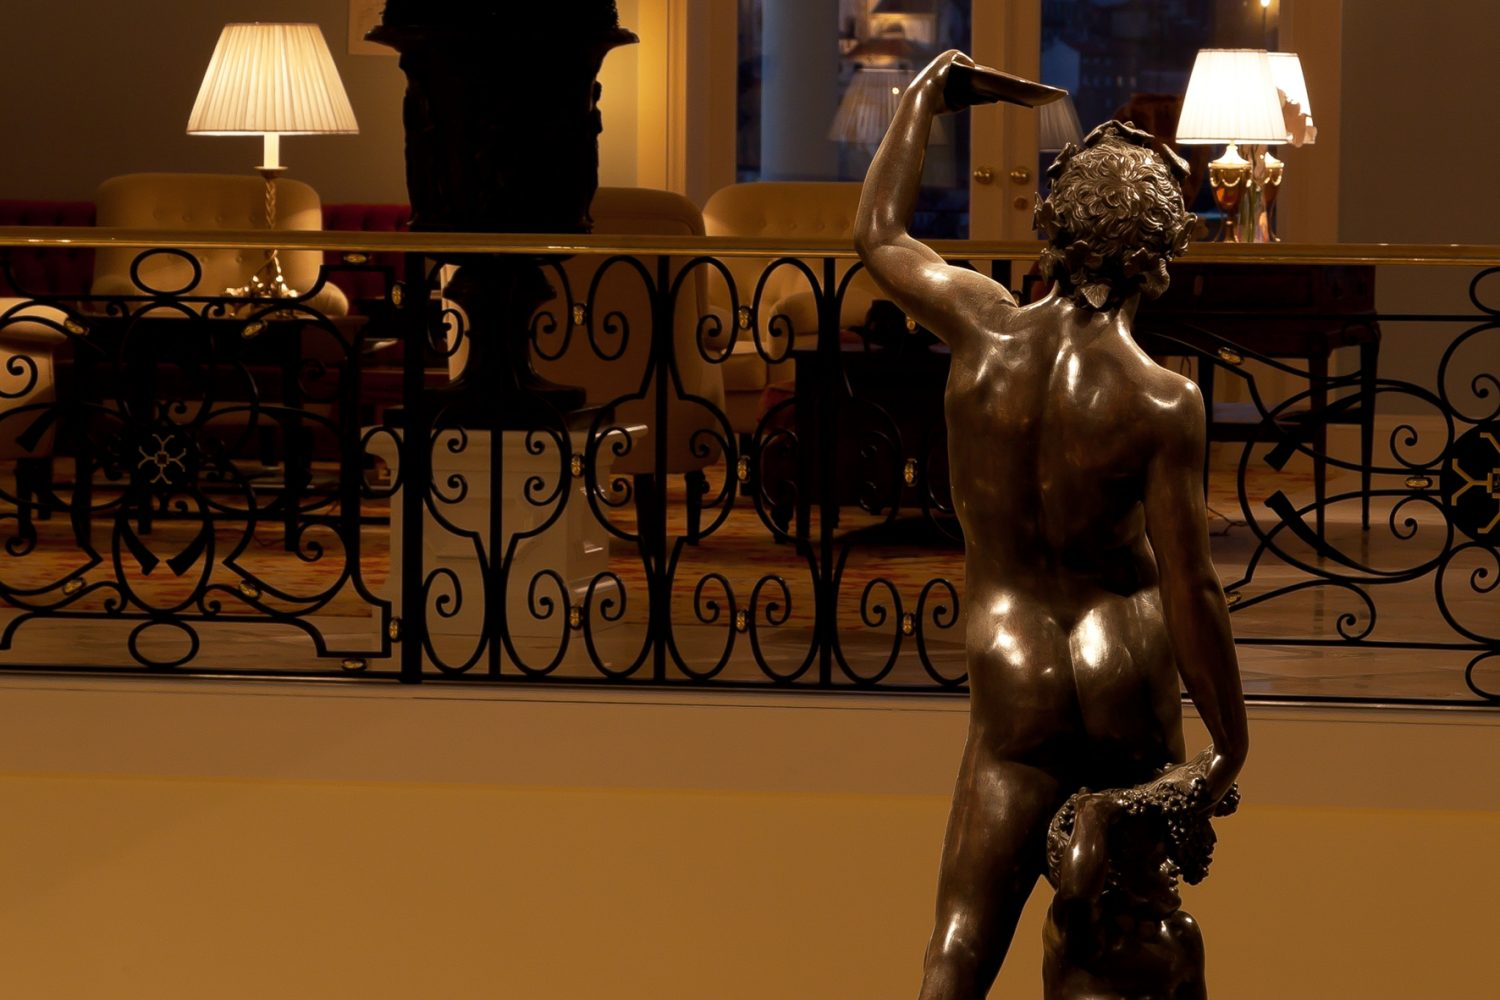 Lobby Bacchus at Yeatman Relais & Chateaux Hotel